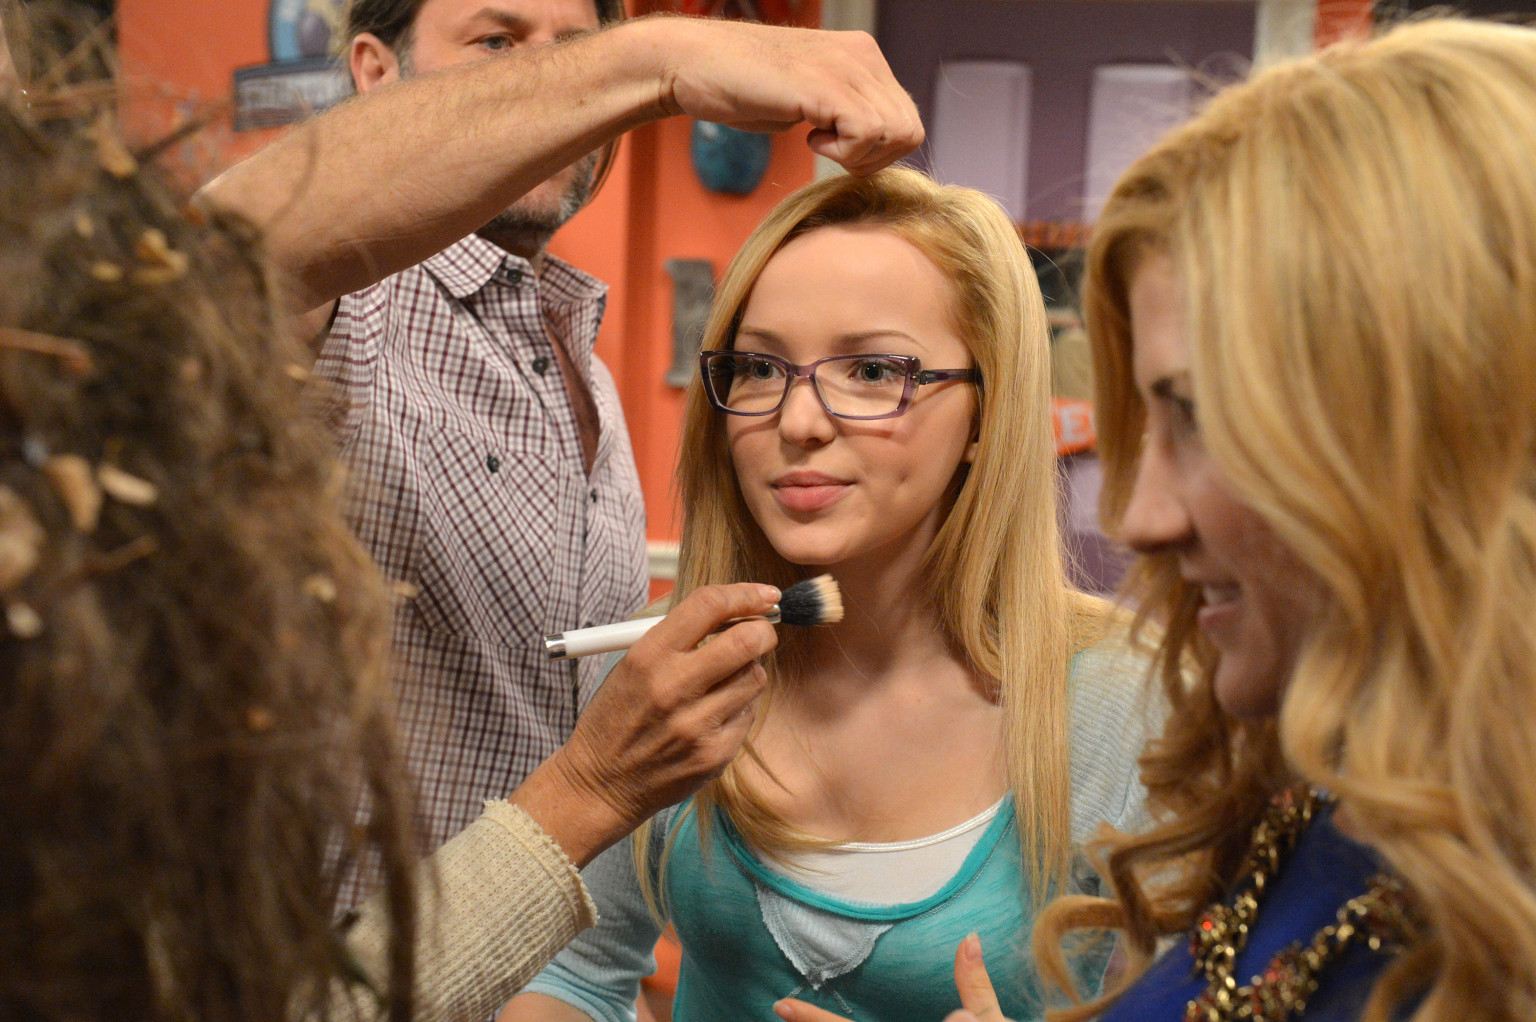 -The-Scenes Look At The Disney Channel's 'Liv And Maddie' (PHOTOS